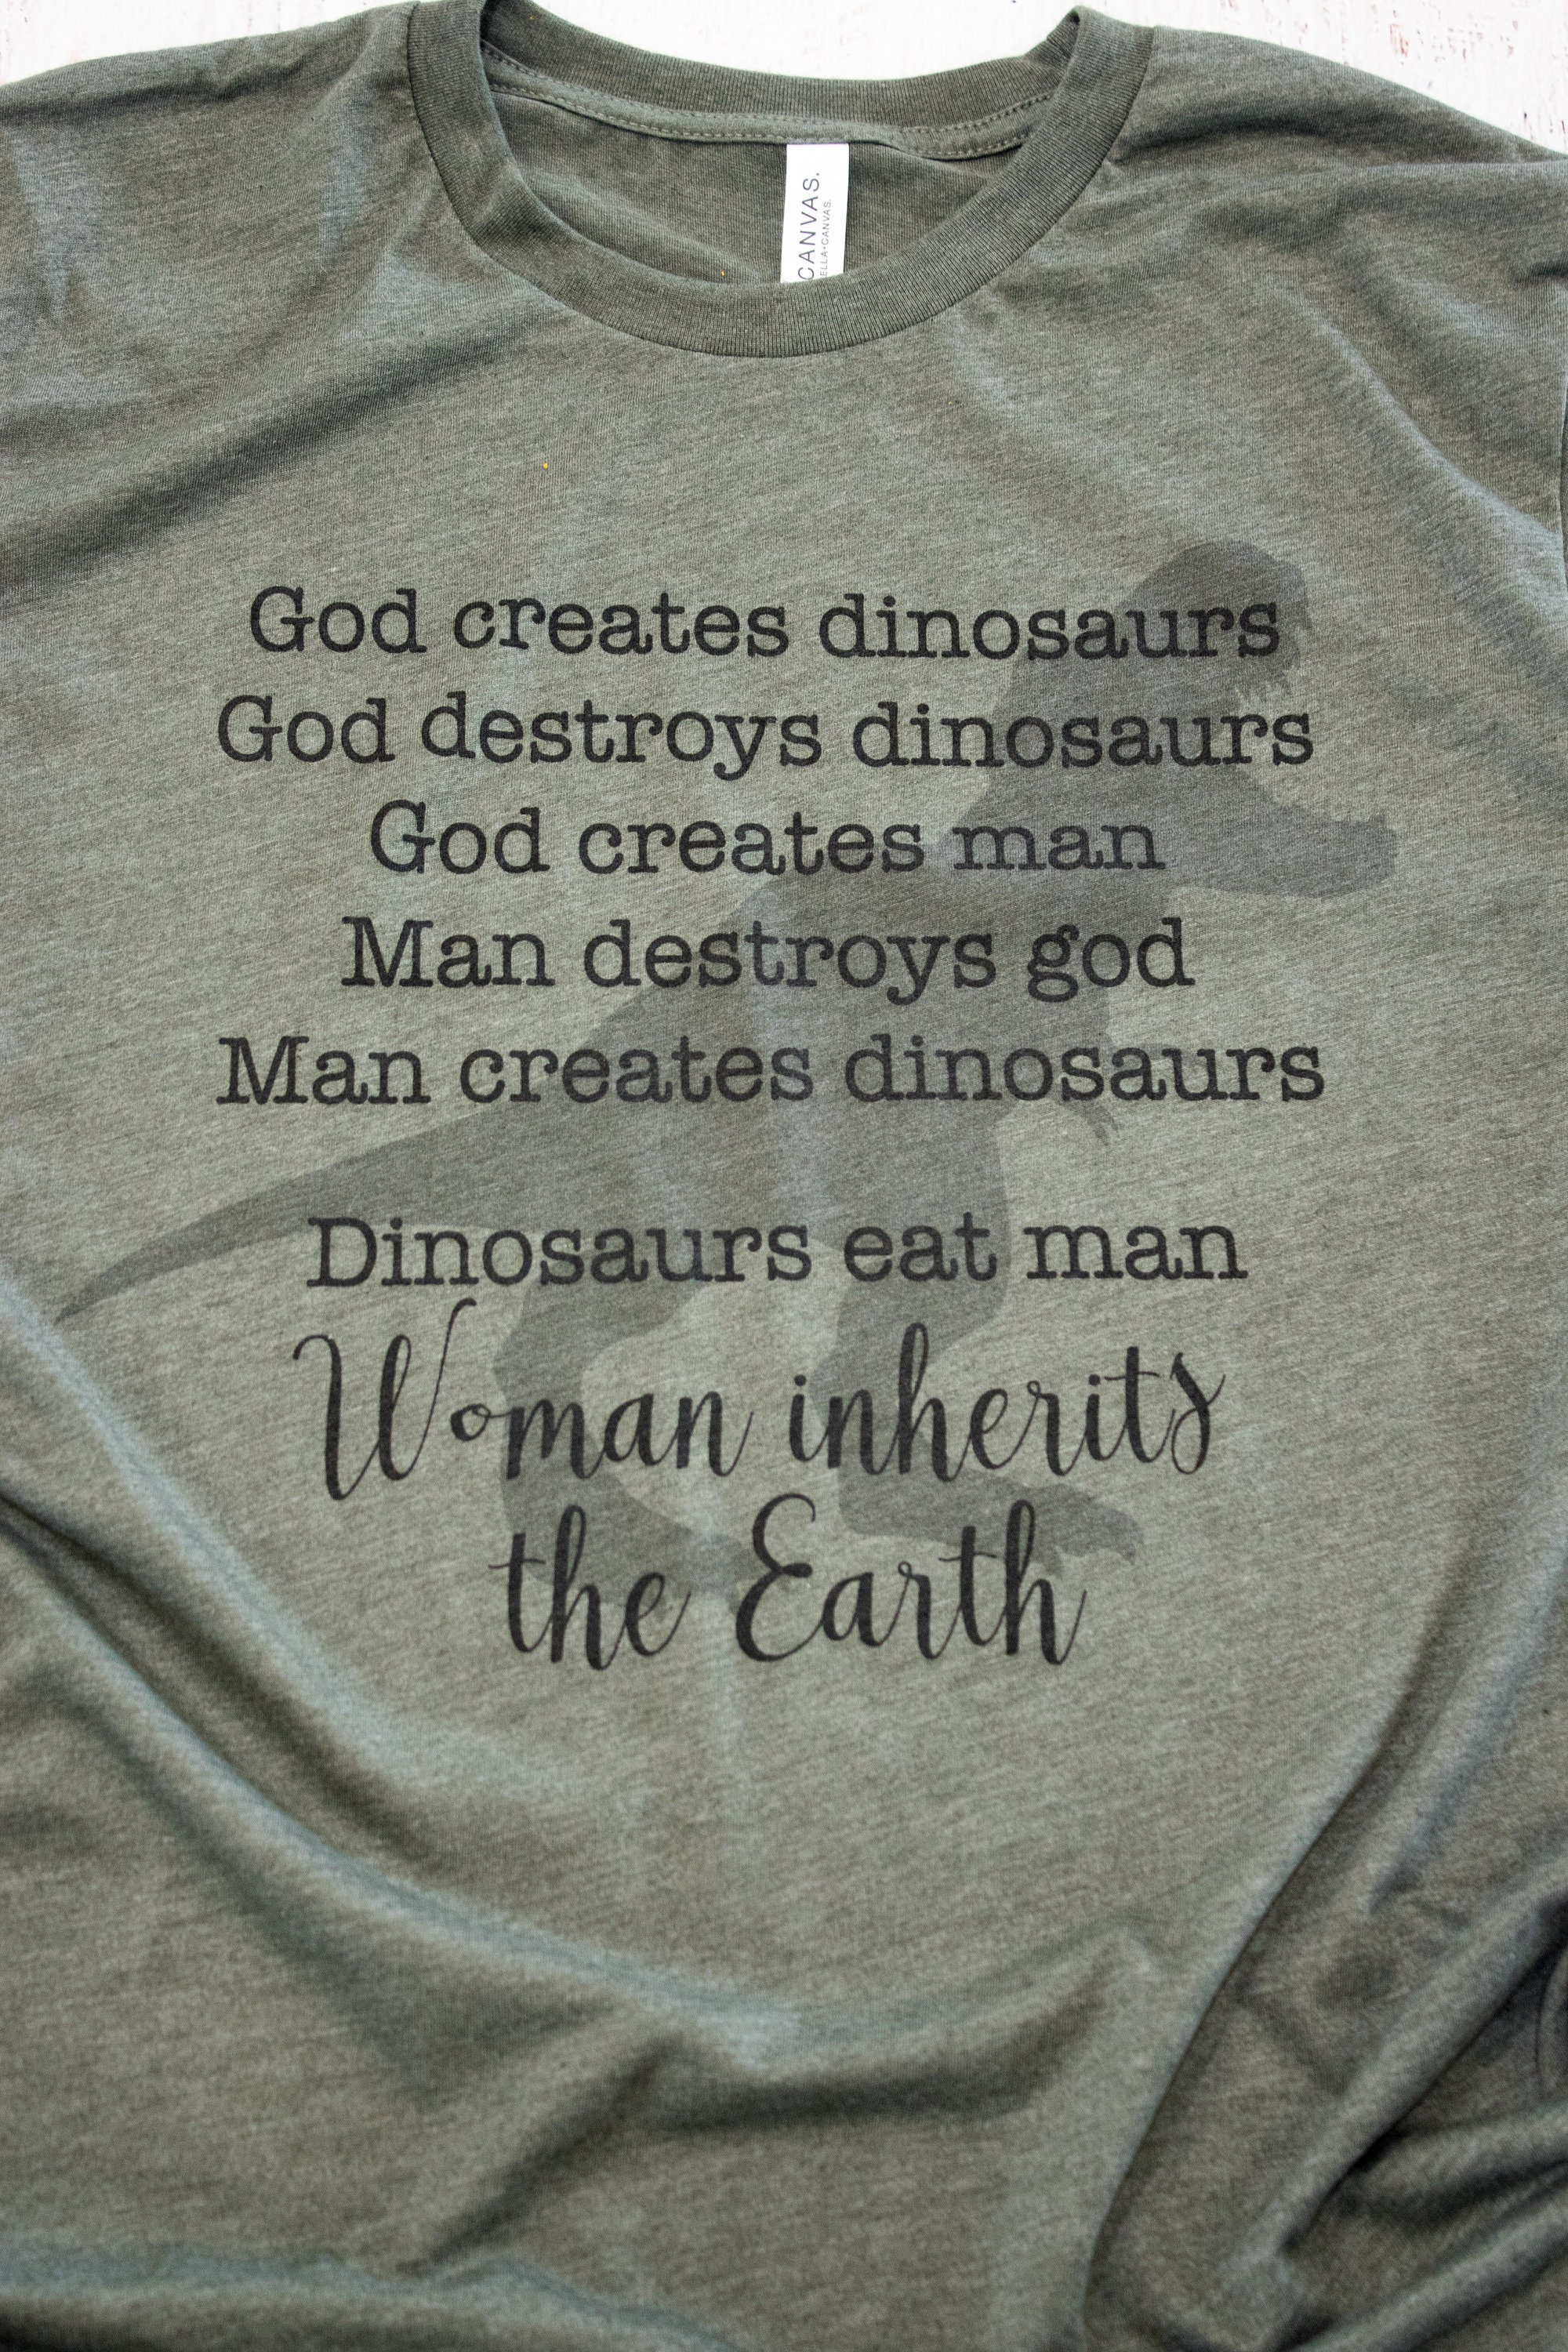 8c481abd2 Dinosaurs eat man, Woman inherits the Earth - Jurassic quote t-shirt